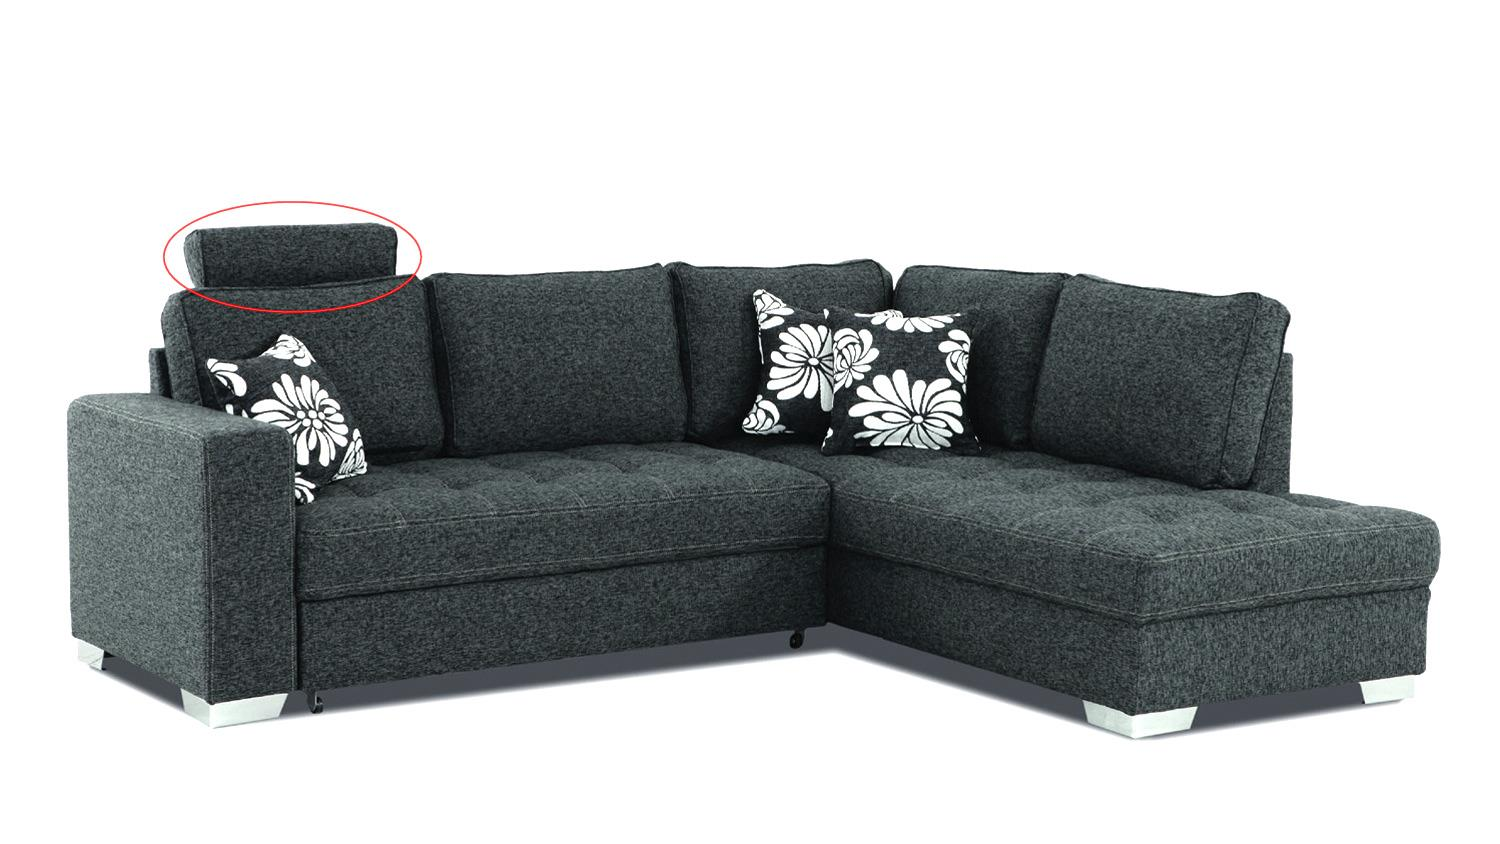 ecksofa arles dunkelgrau inkl kissen 233x215 cm. Black Bedroom Furniture Sets. Home Design Ideas